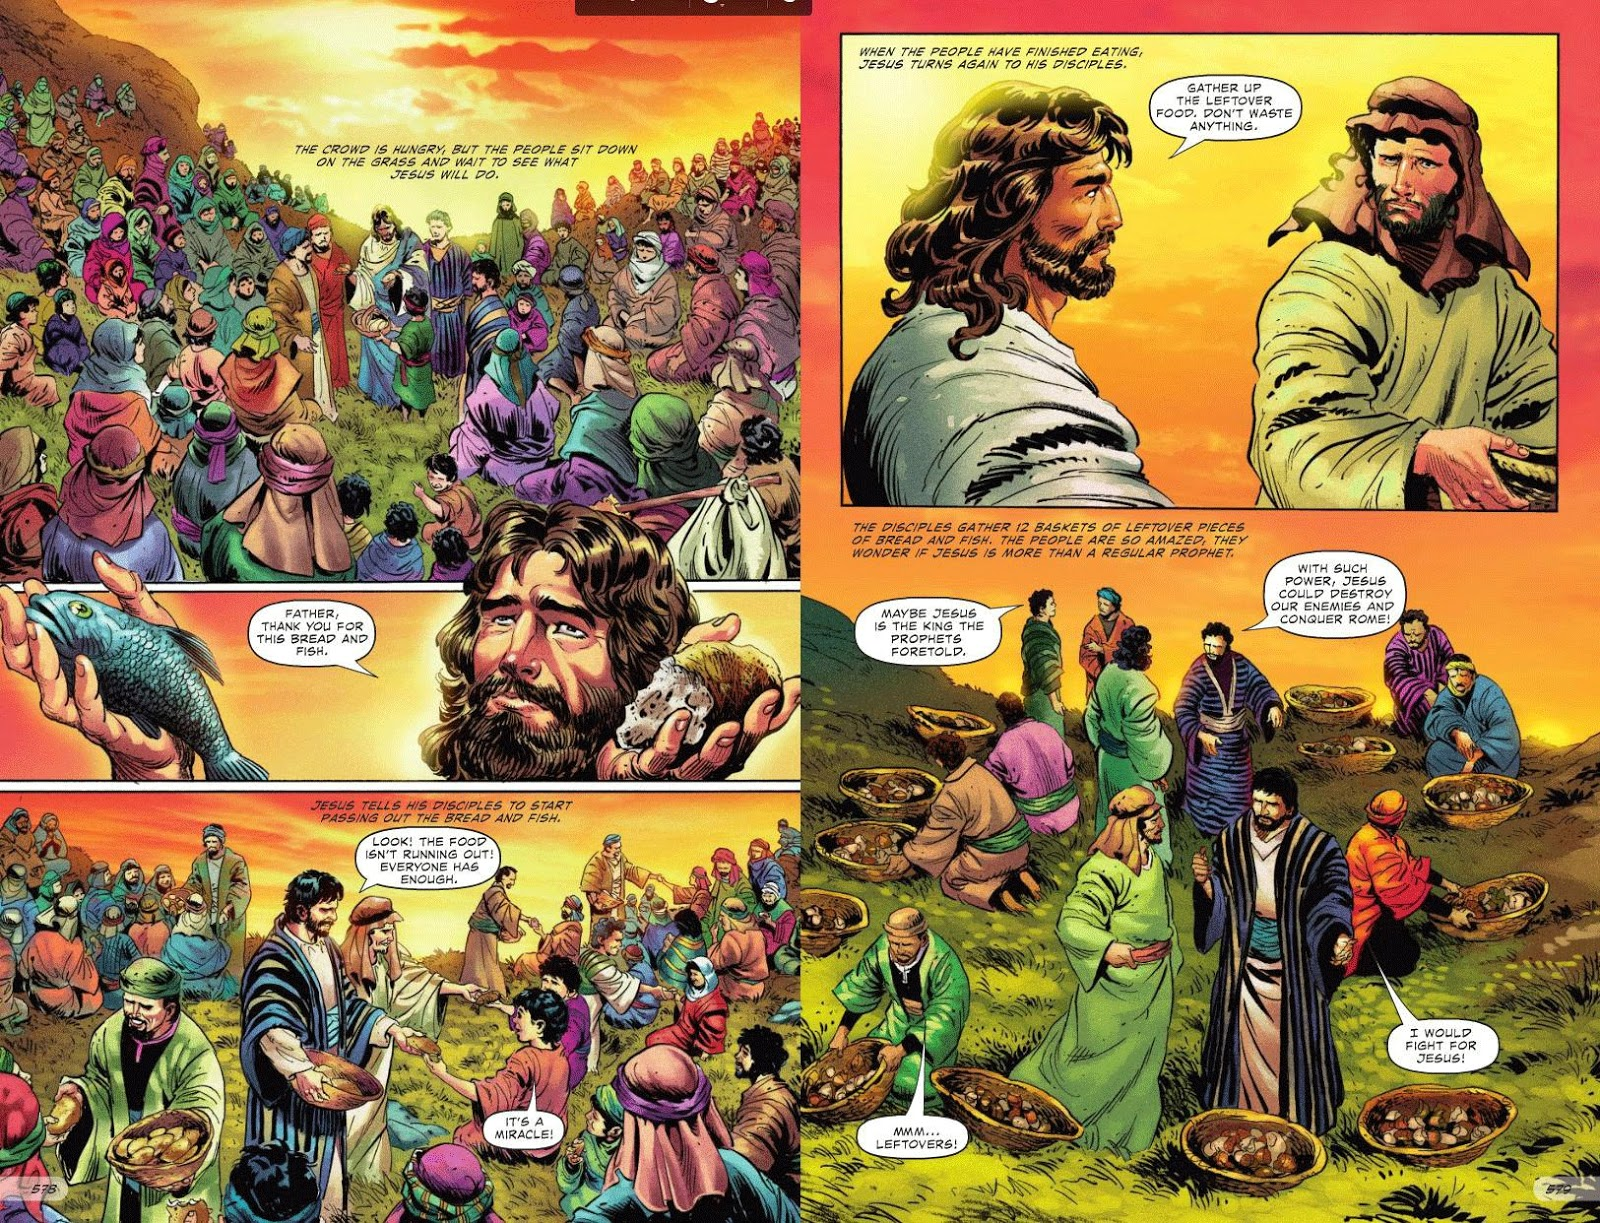 The Entire Bible To Published As A Graphic Comic Book Version